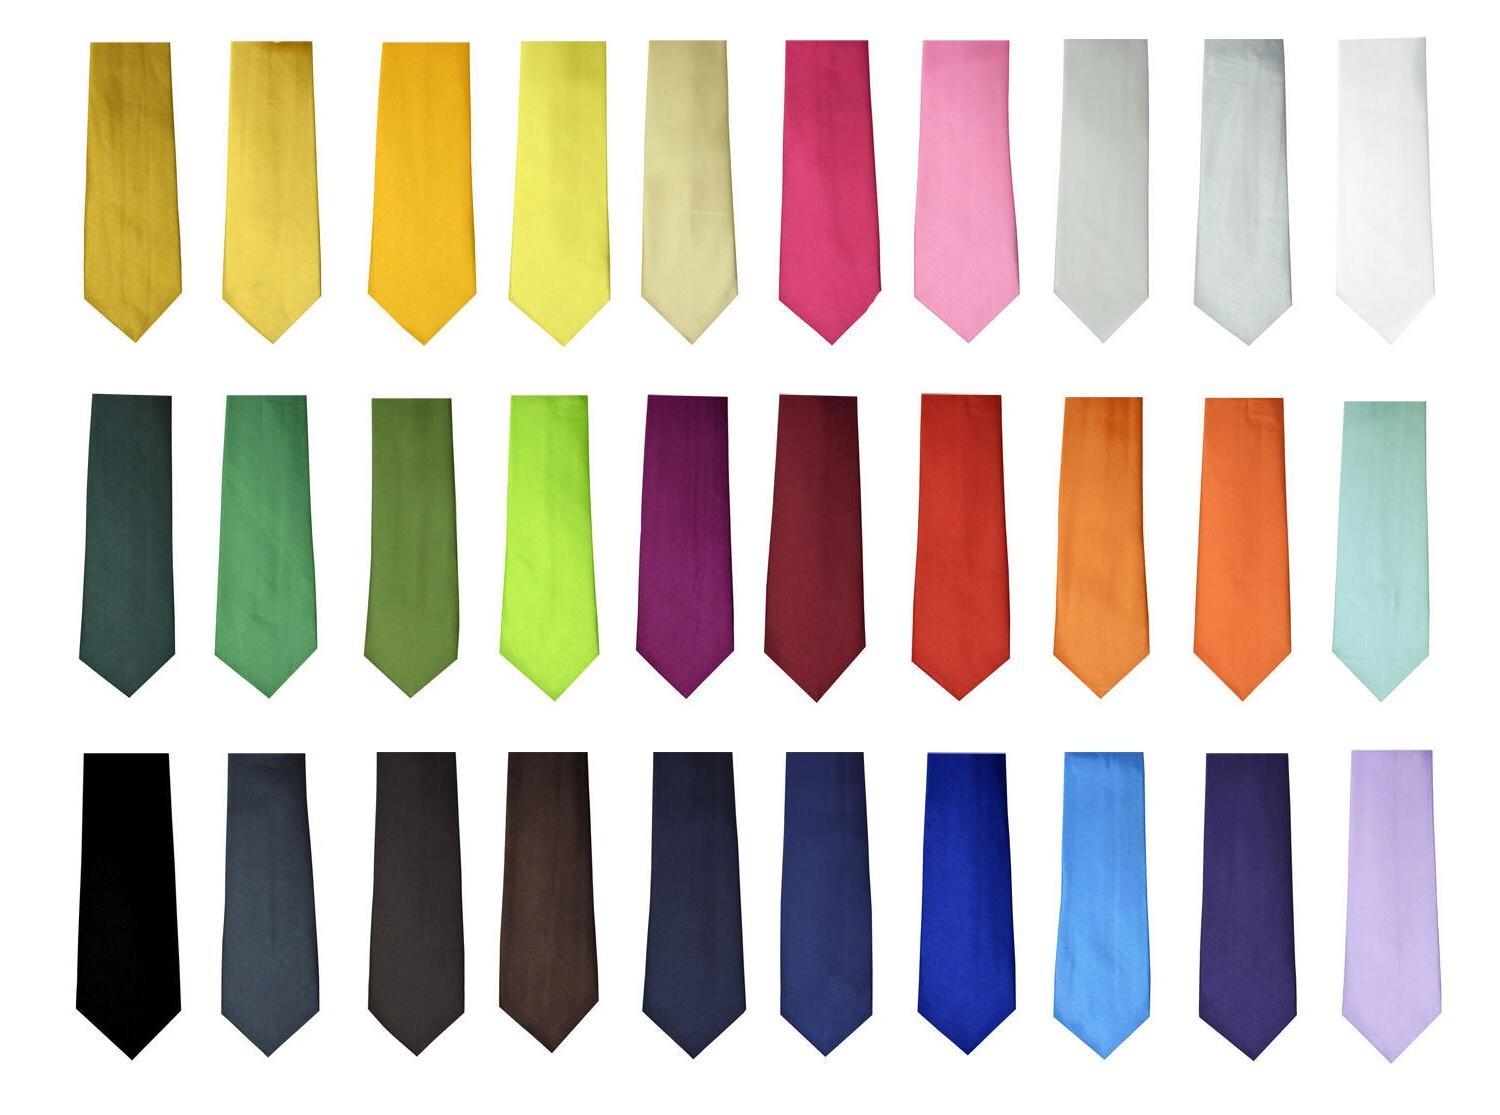 Fashion New Style Men's Unisex Solid Plain Neck ties Wide 3